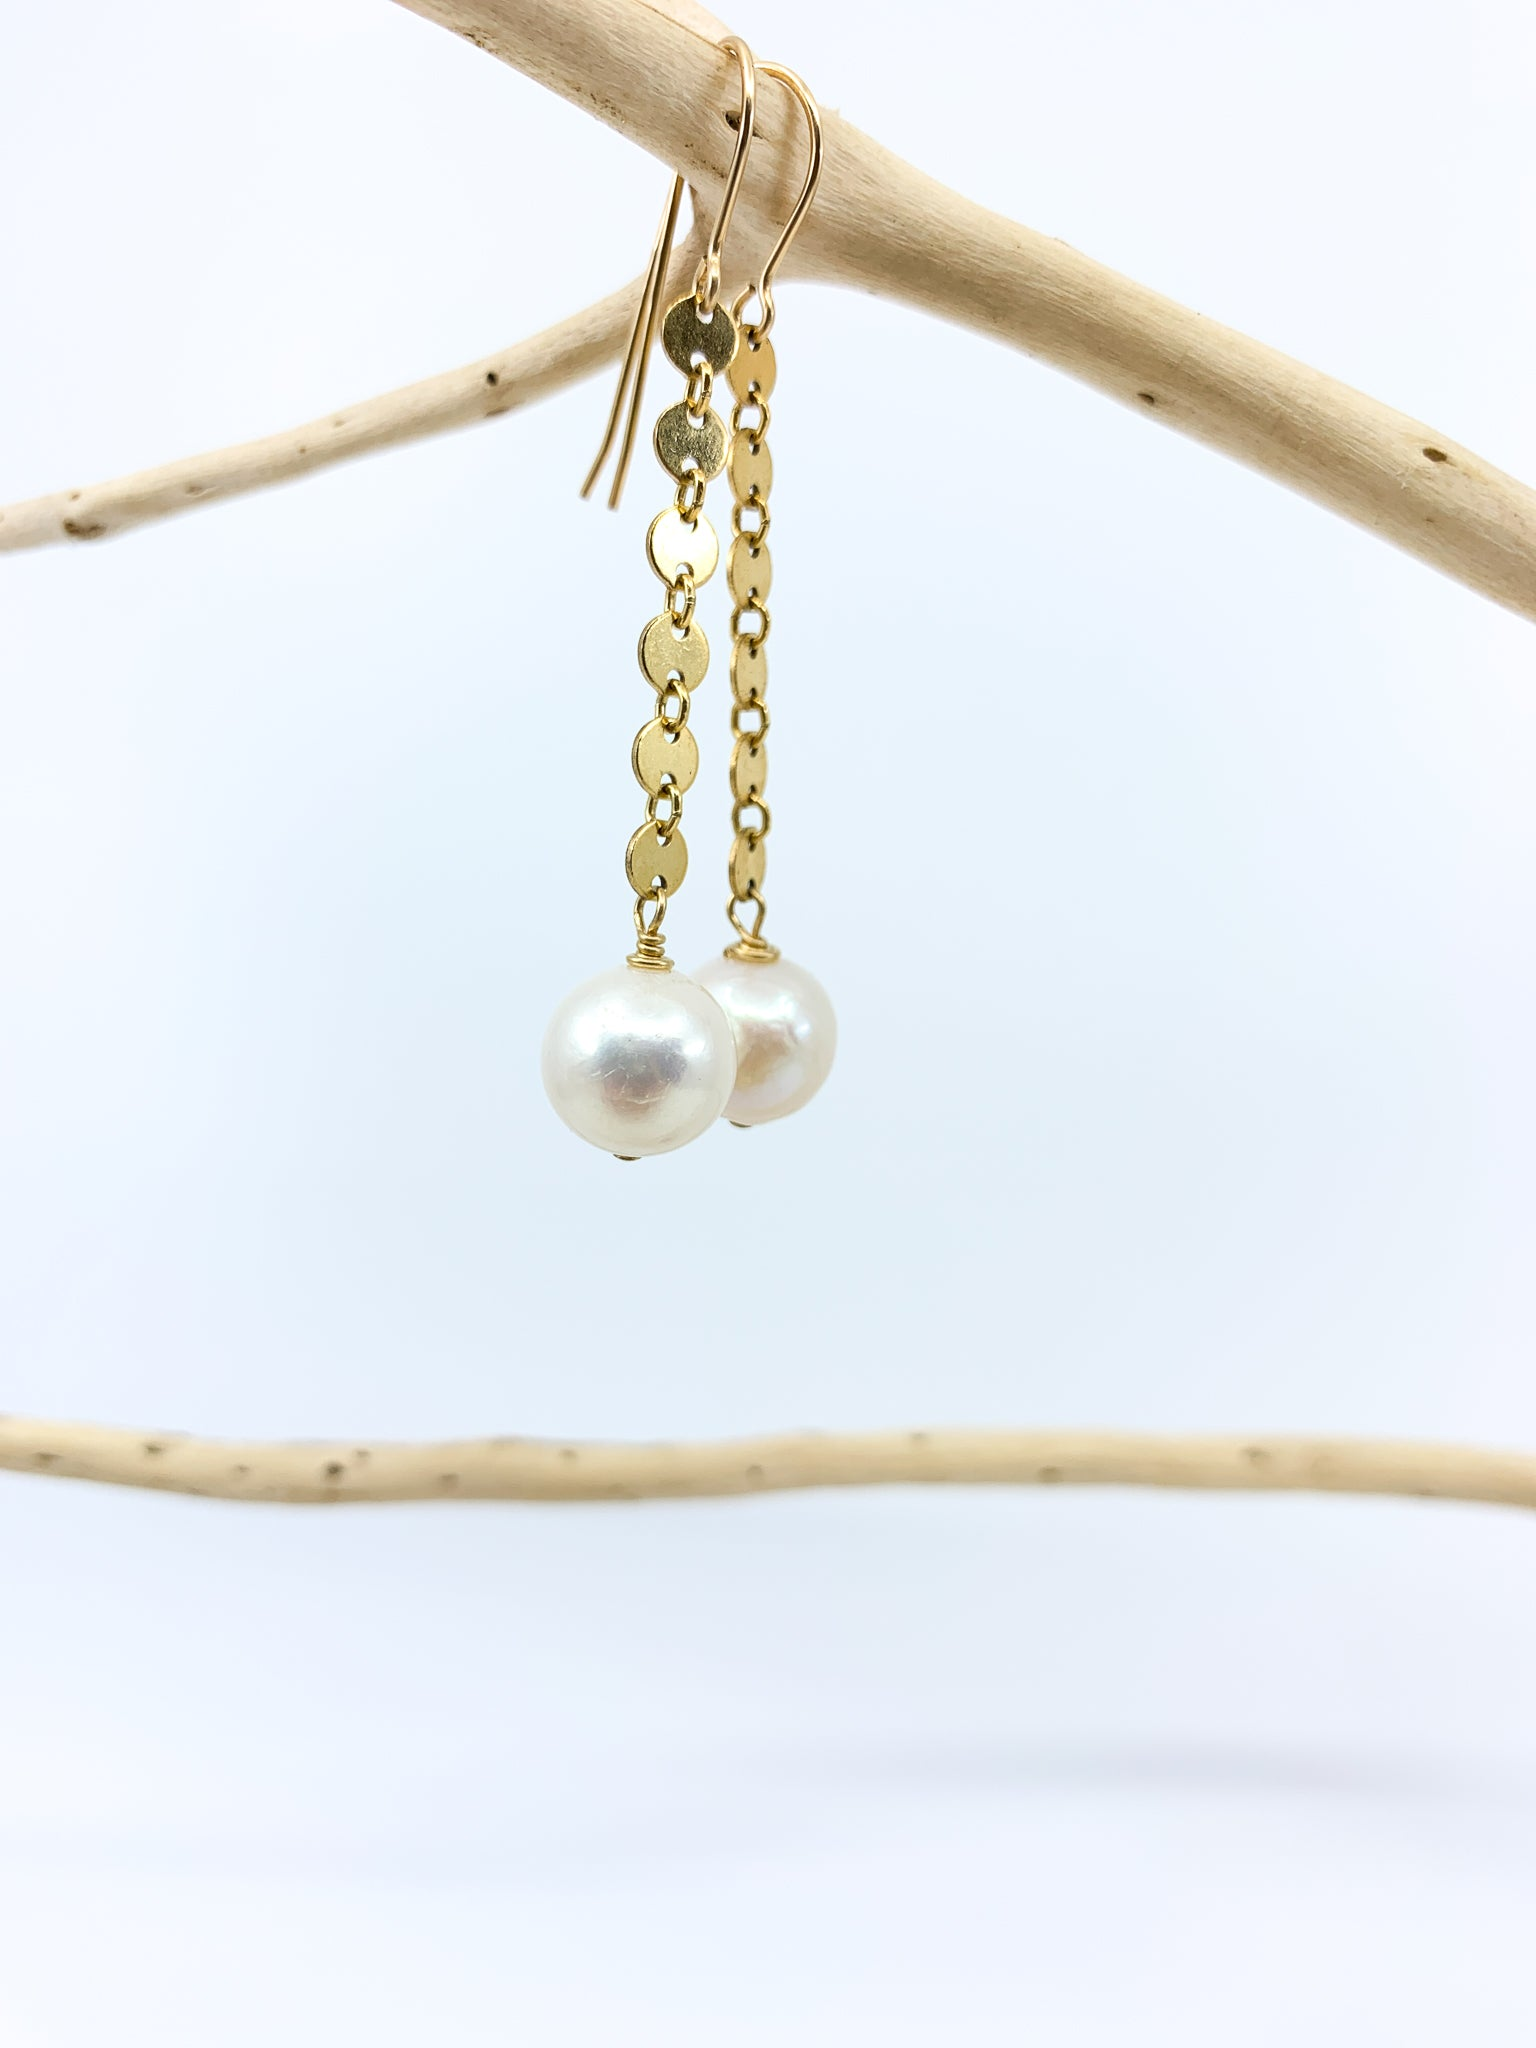 white pearls with gold fill chain earrings by eve black jewelry made in Hawaii